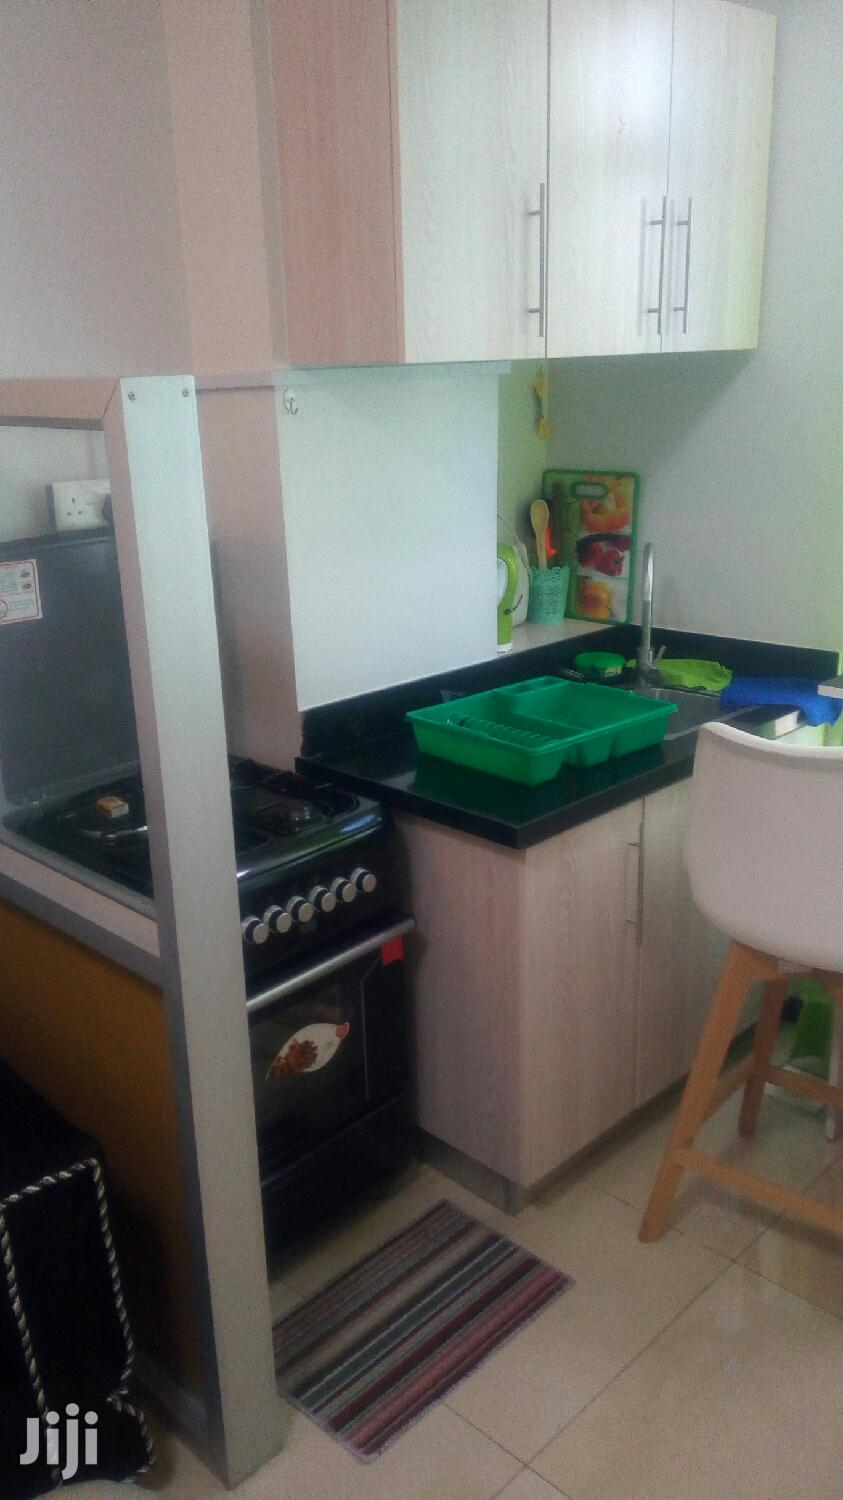 To Let: New Furnished Studio Near Valley Arcade | Houses & Apartments For Rent for sale in Lavington, Nairobi, Kenya